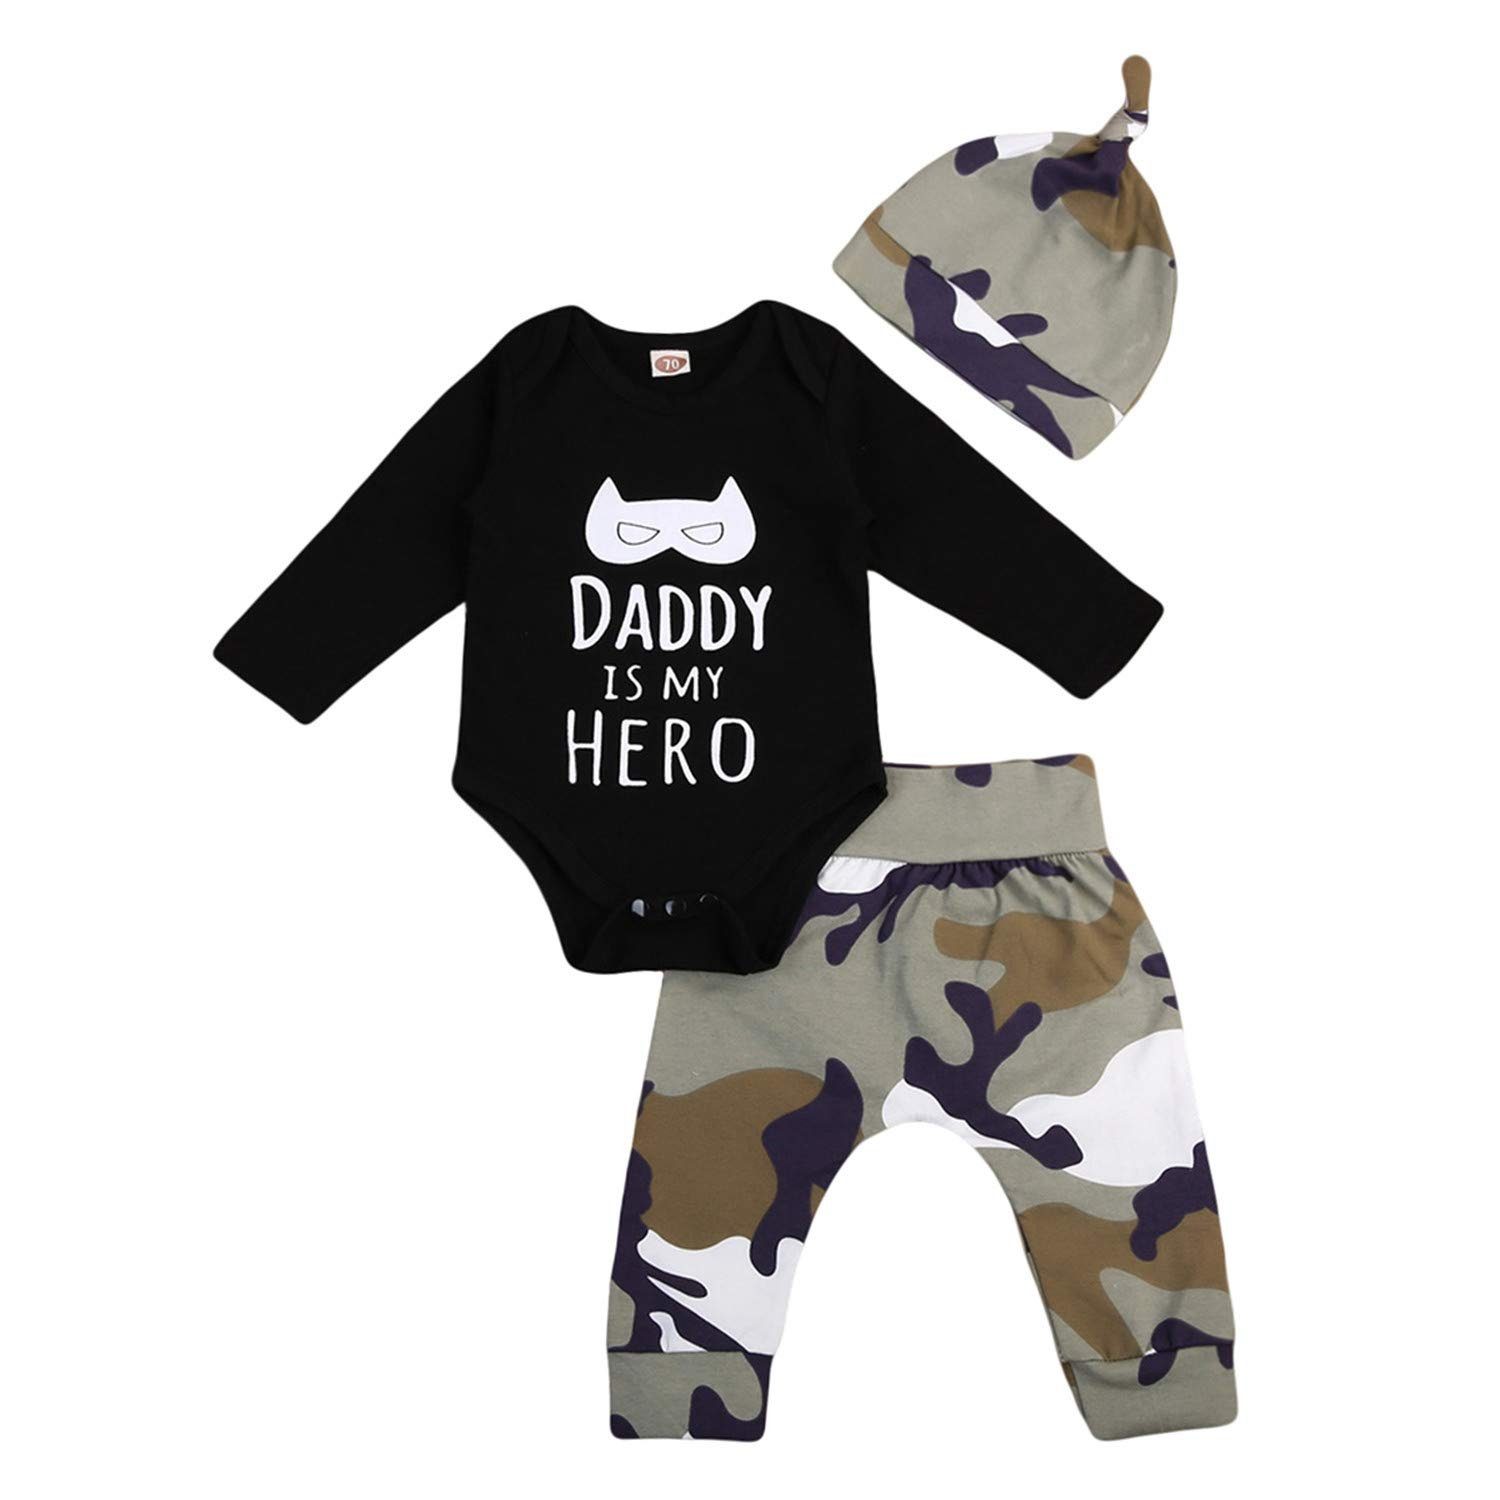 Hot Sale 3Pcs Baby Clothing Toddler Infant Baby Boys Long Sleeve Tops Romper Jumpsuit Pants Baby Camo Cotton Outfit Clothes Set 0-2T